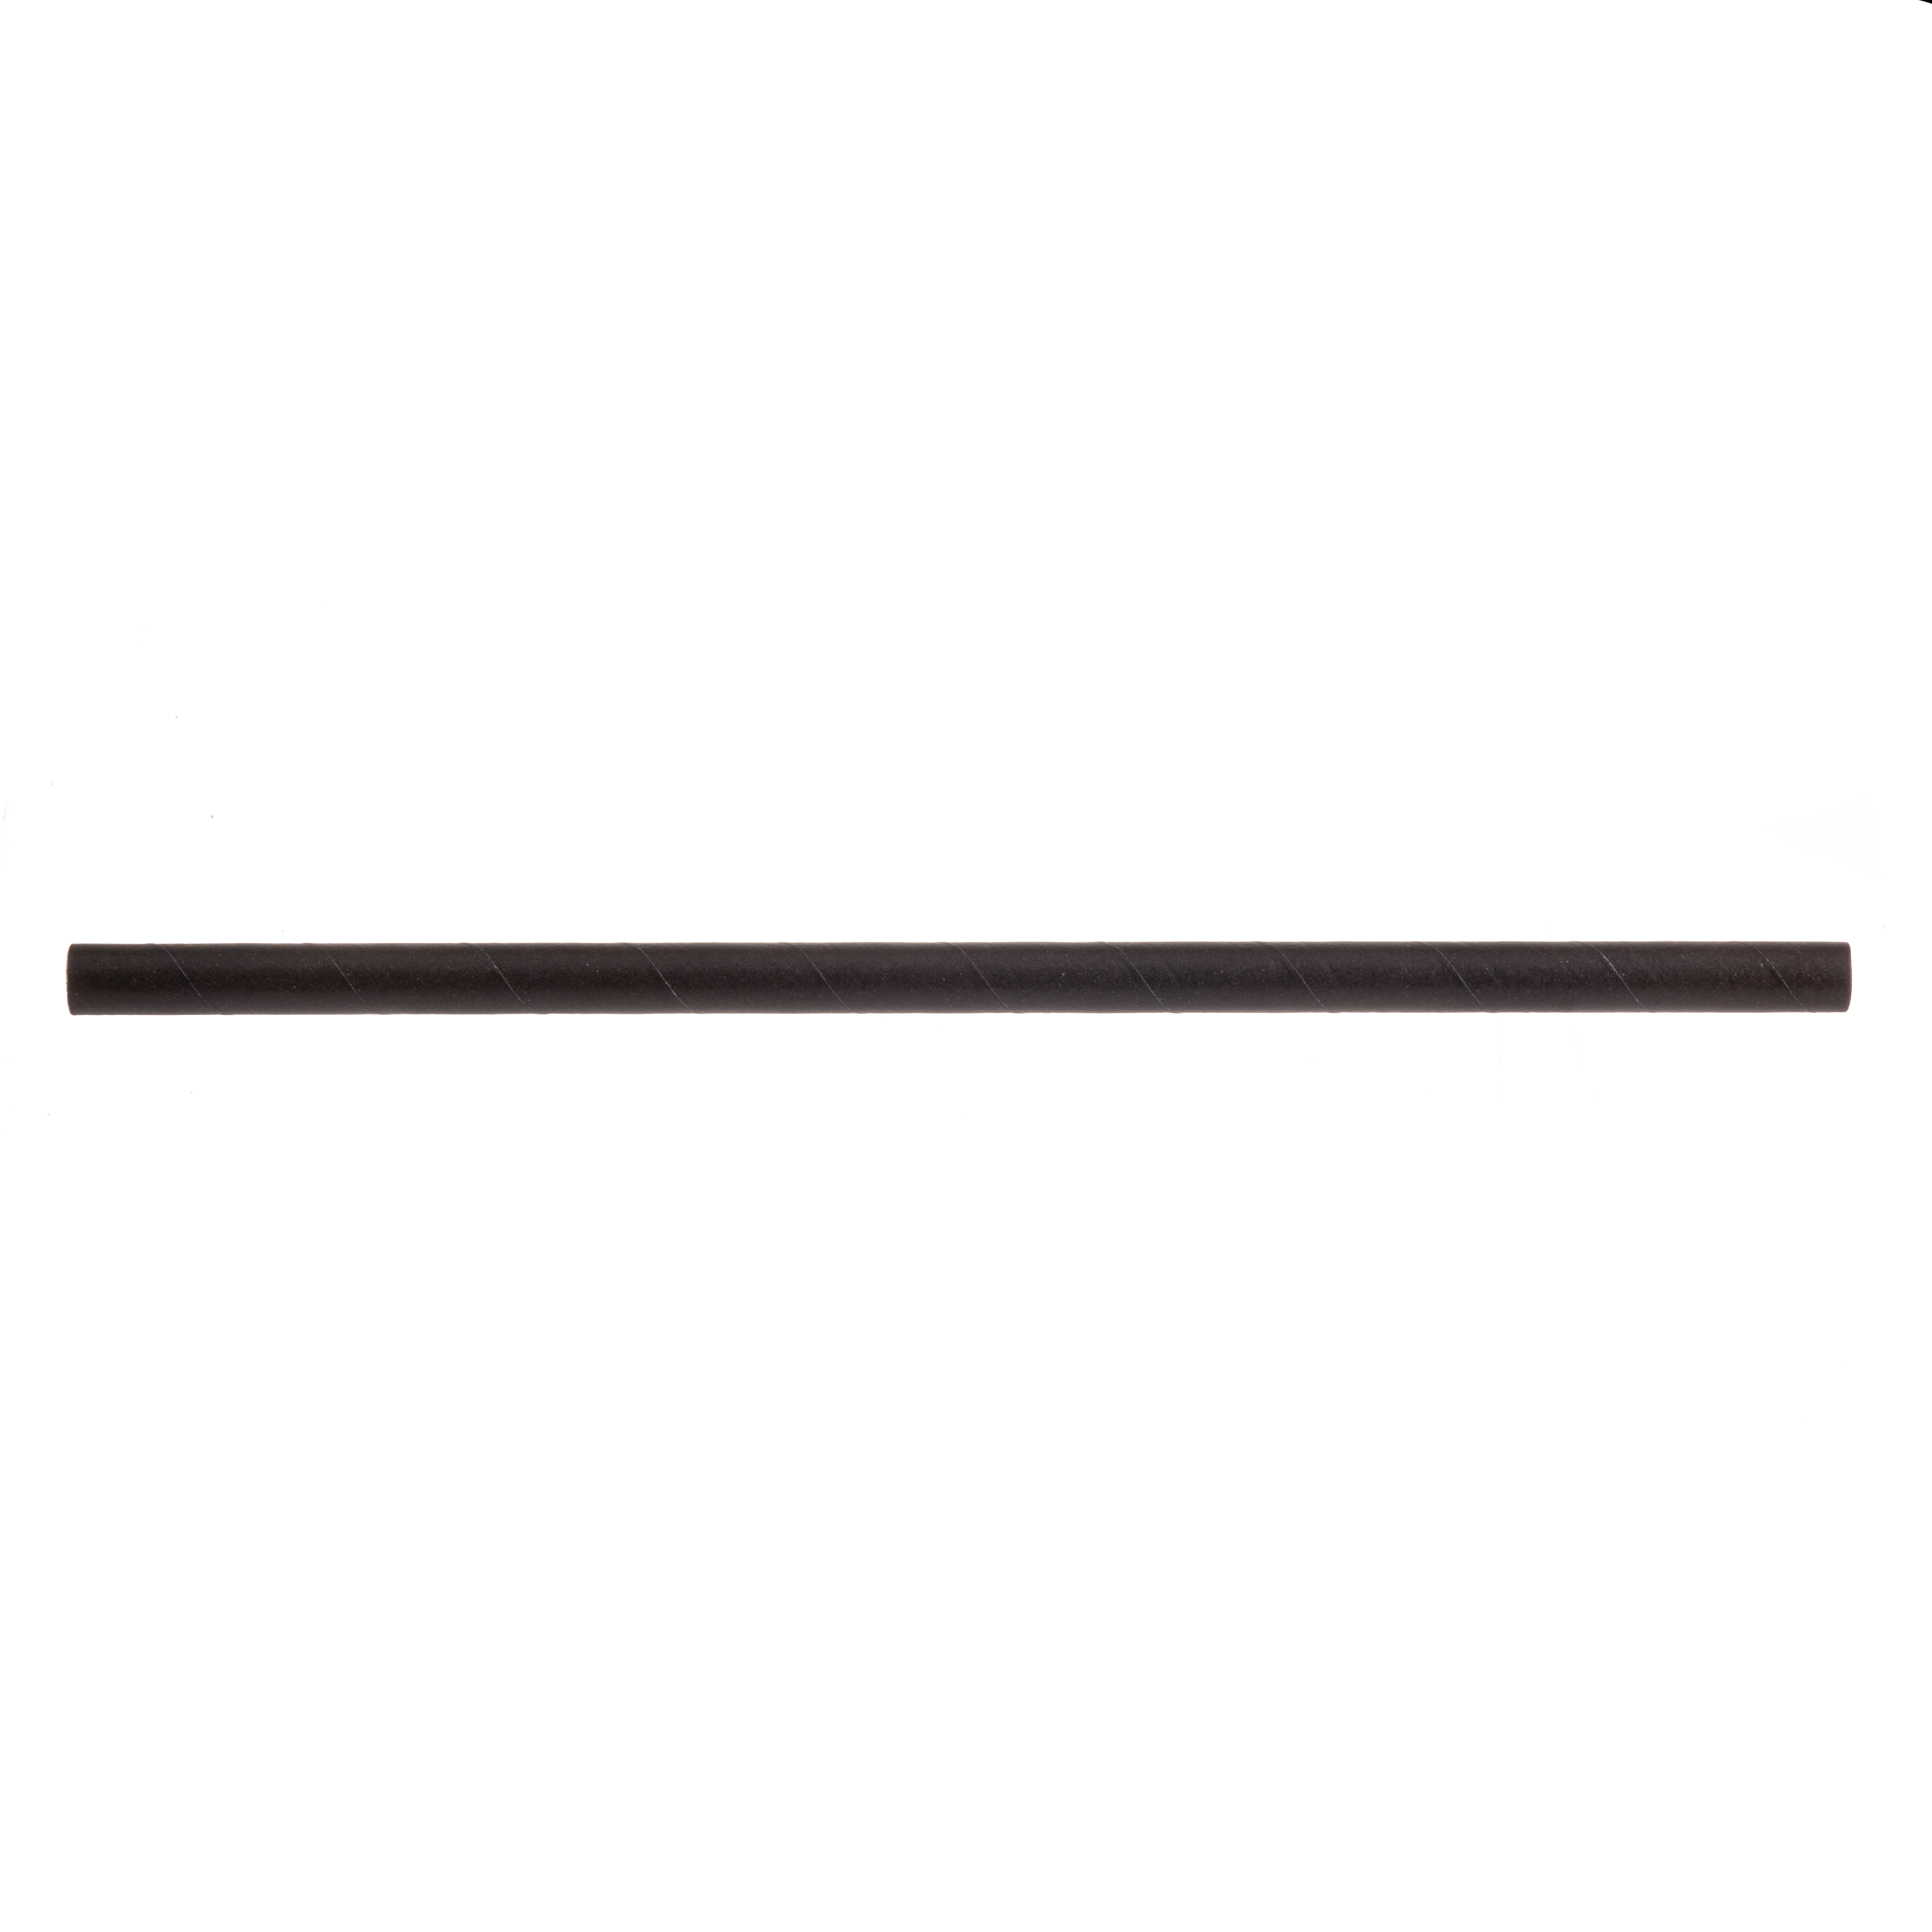 TableCraft Products 700109 straws